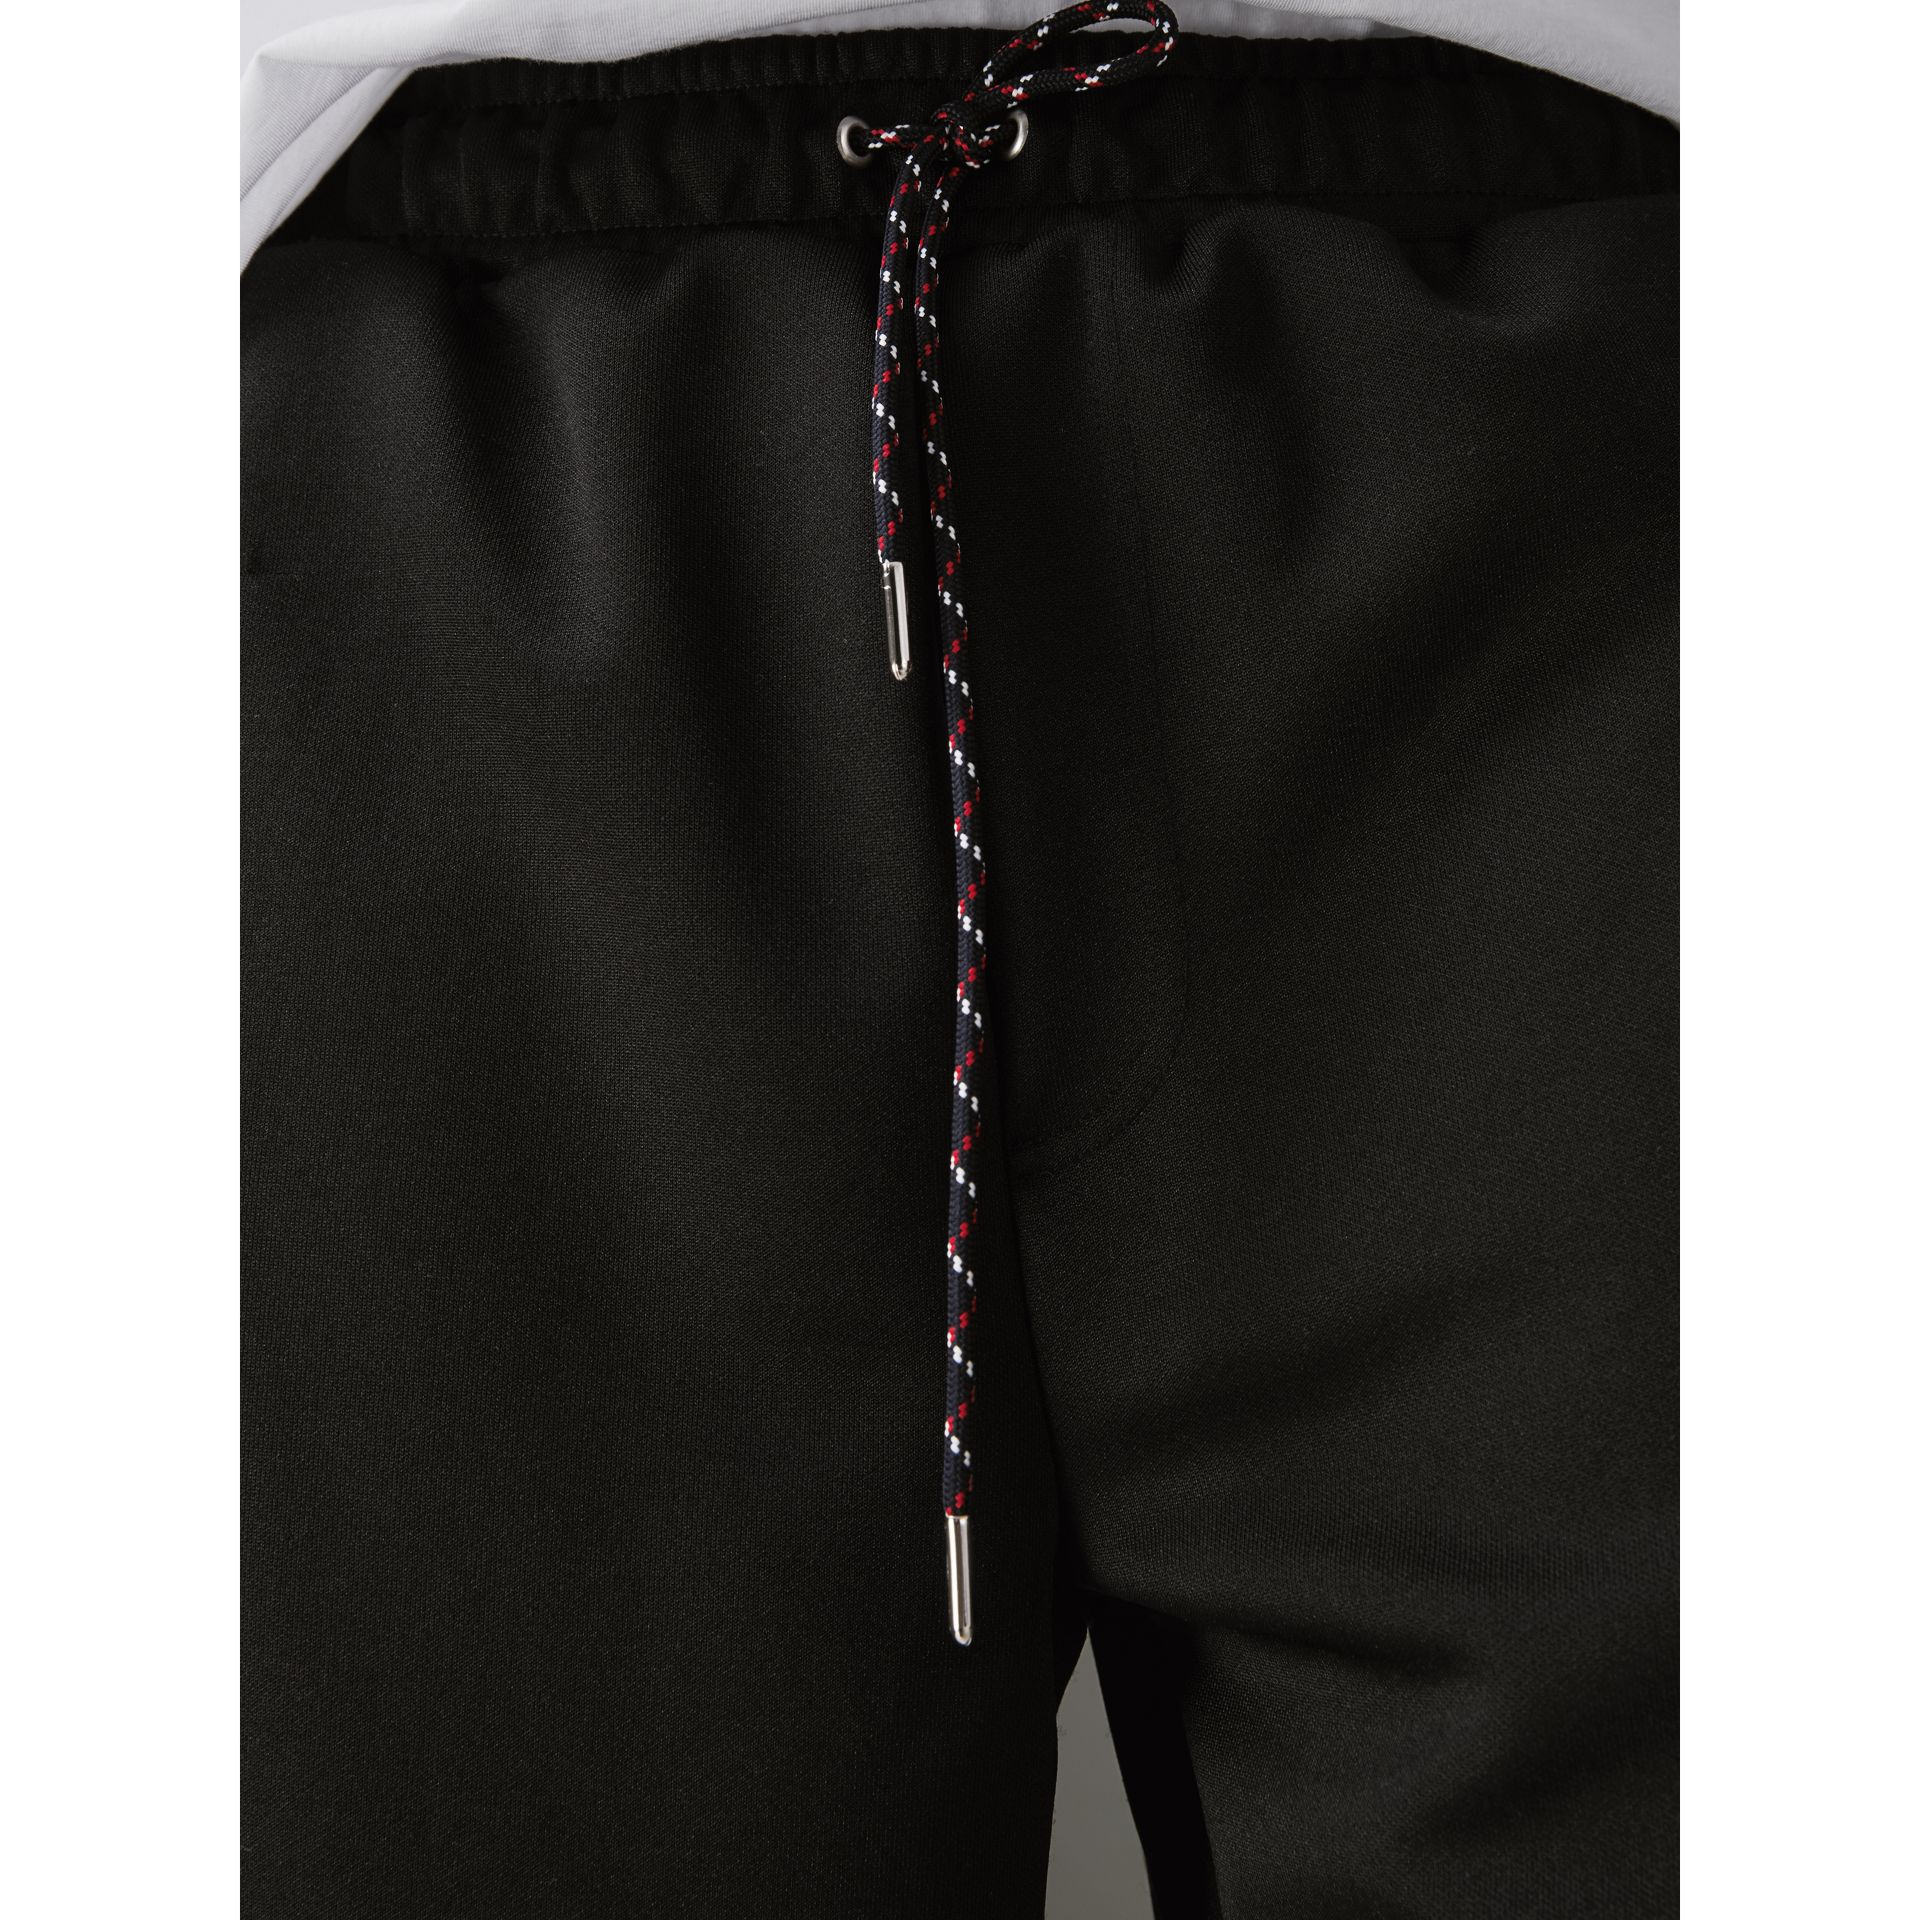 Cotton Blend Drawcord Shorts in Black - Men | Burberry United Kingdom - gallery image 1